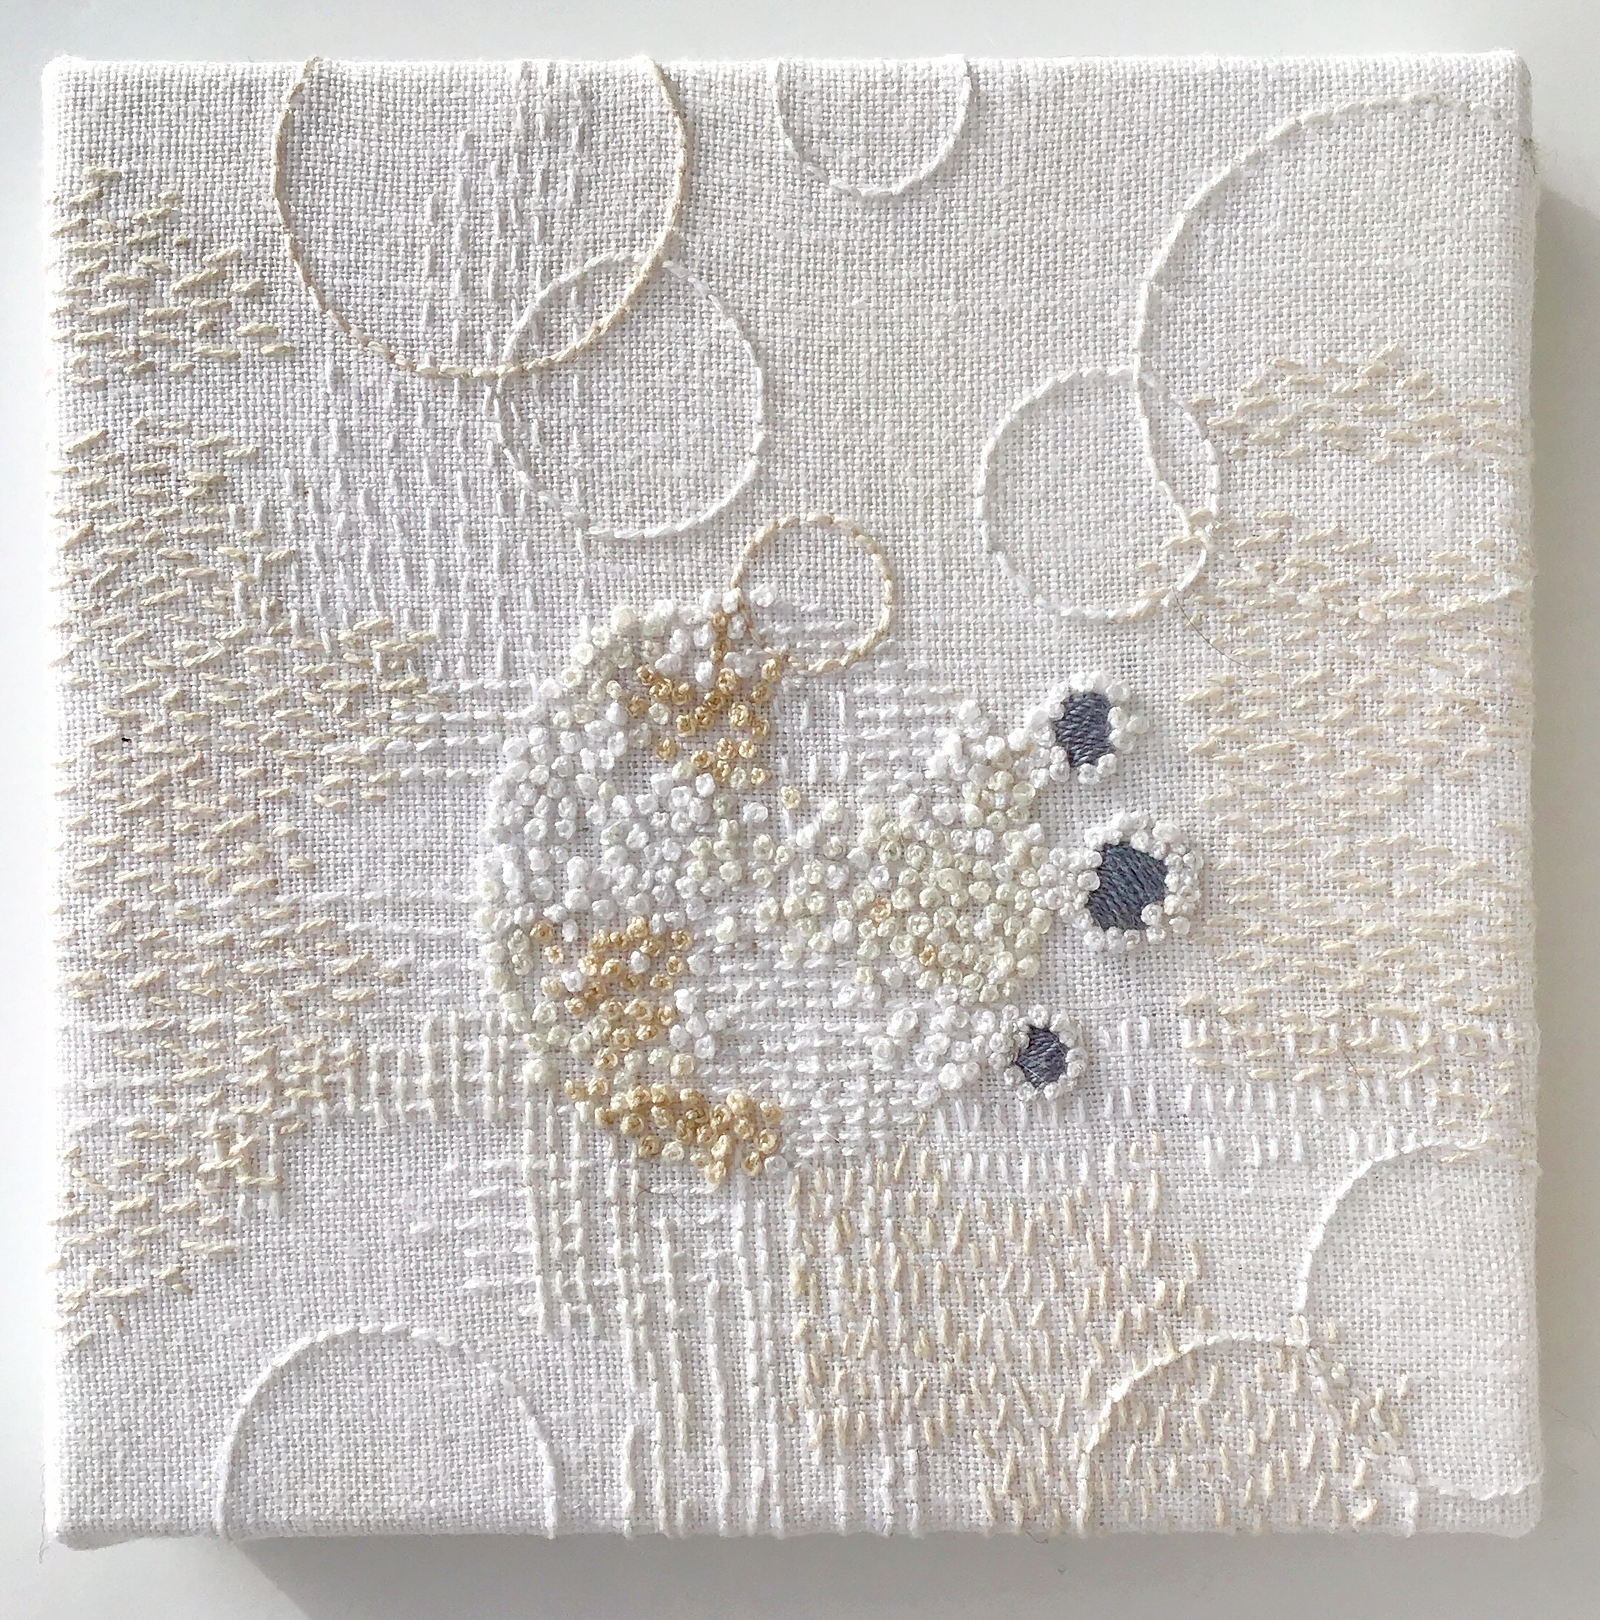 Stitch Journal 2019, No. 2 (Snow), 2019, pearl cotton and linen, 6 x 6 inches